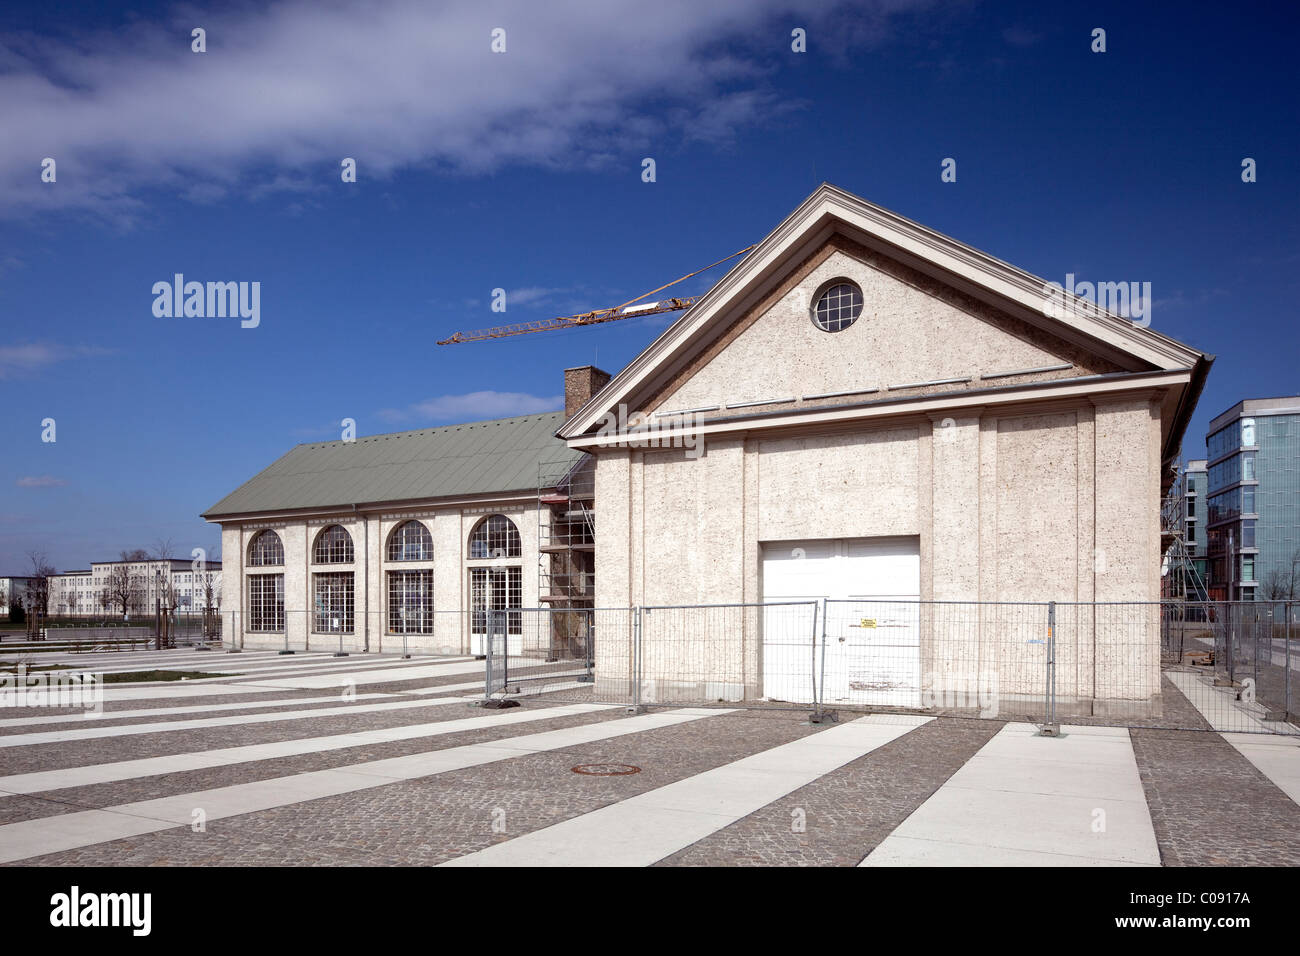 Forum in the Wissenschaftsstadt Adlershof Science City, Berlin, Germany, Europe Stock Photo